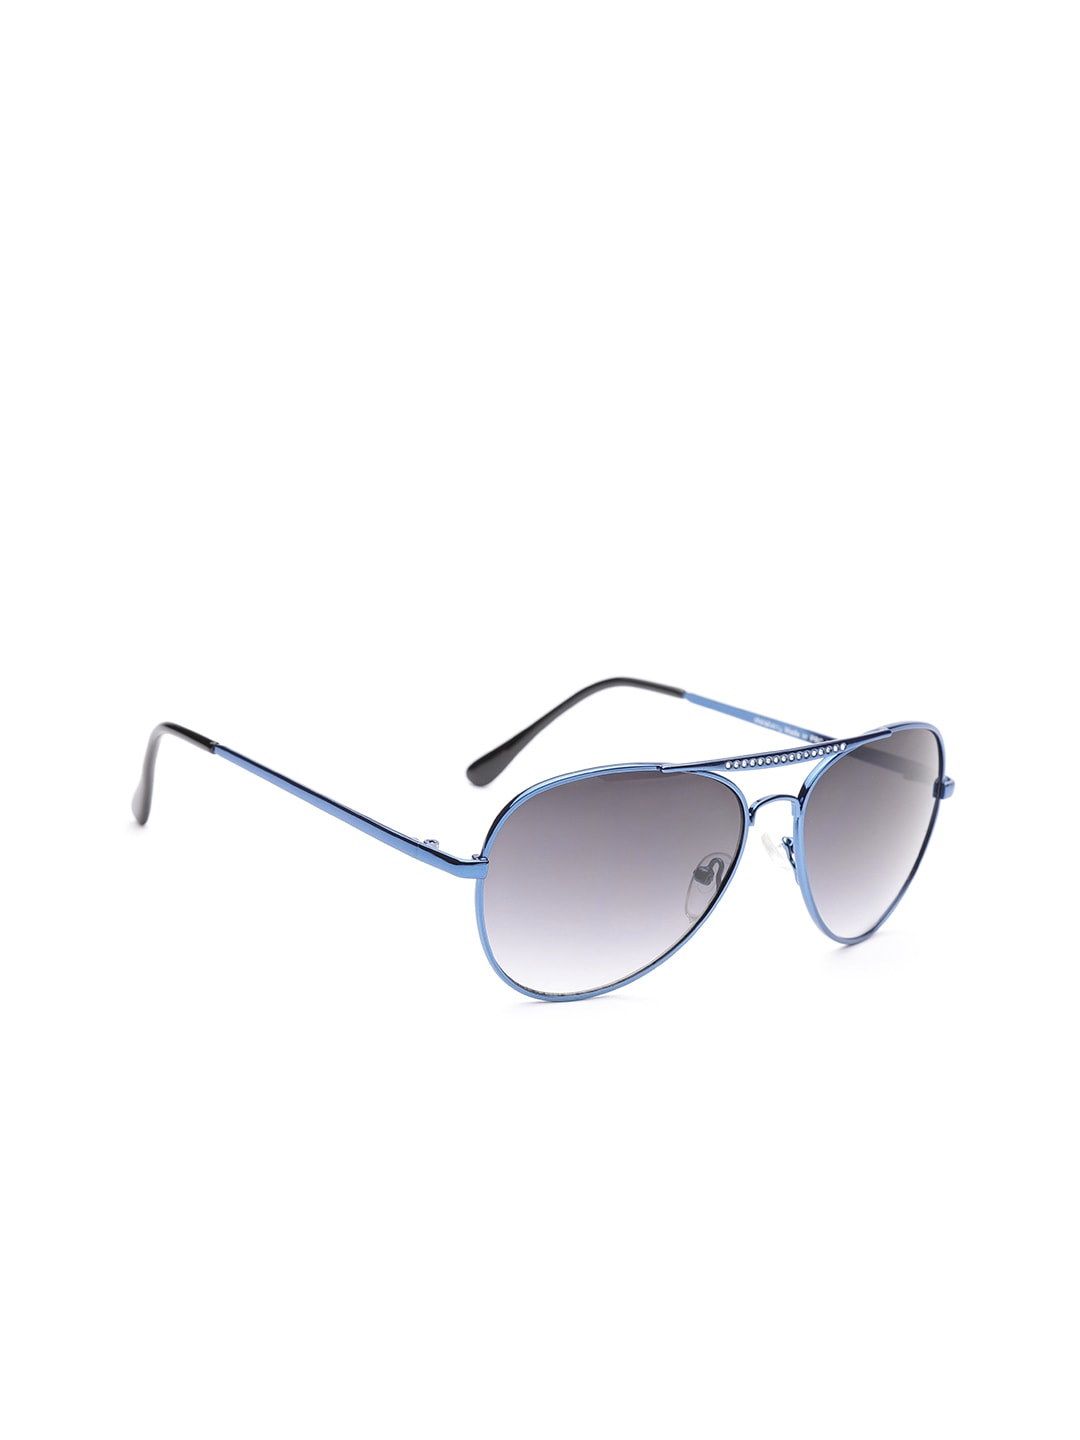 e65bf5b3b0b Sunglasses For Women - Buy Womens Sunglasses Online